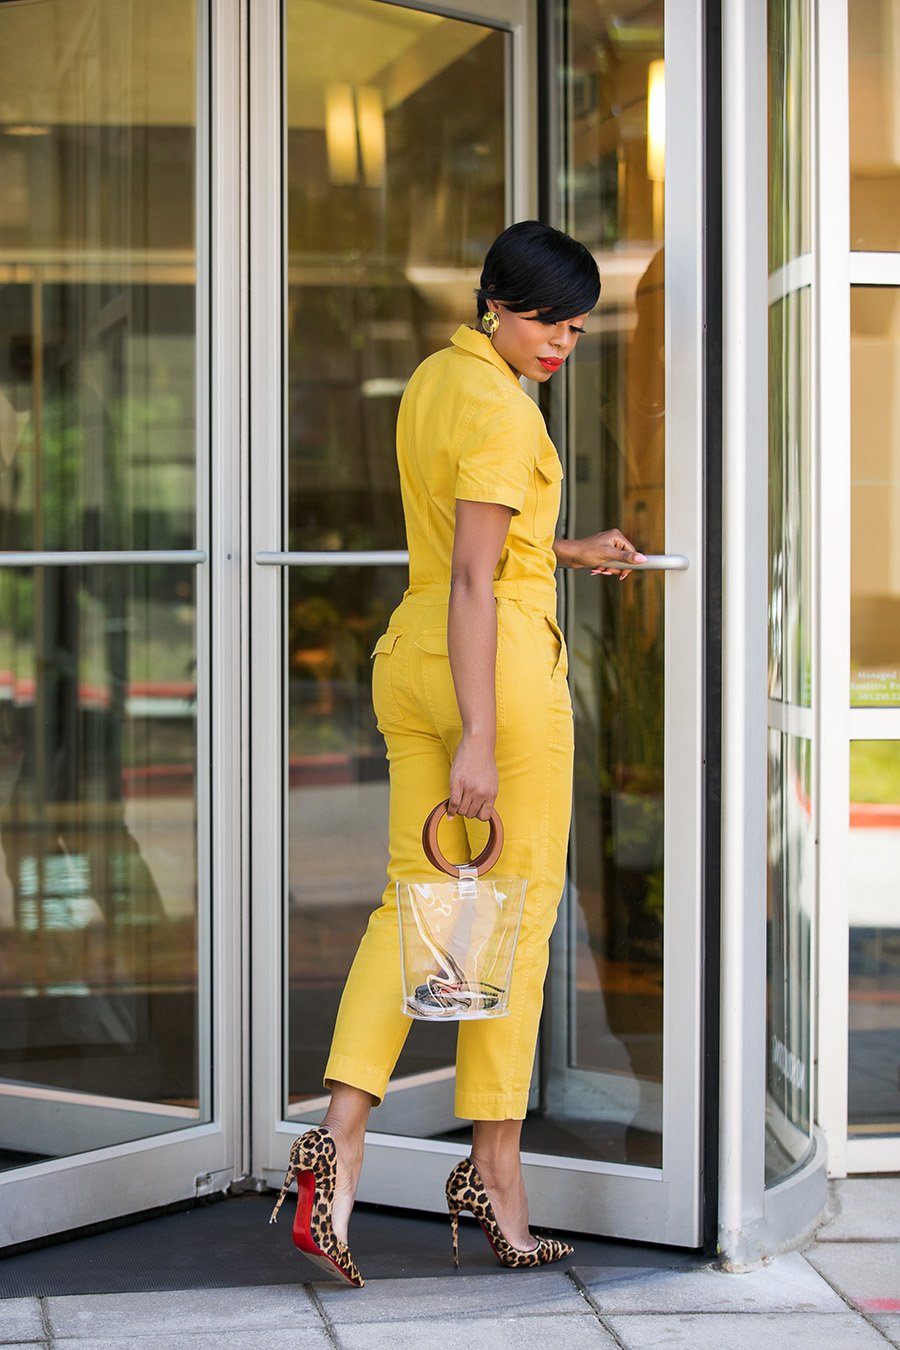 stella-adewunmi-of-jadore-fashion-blog-shares-yellow-madewell-boiler-suit-leopard-pumps